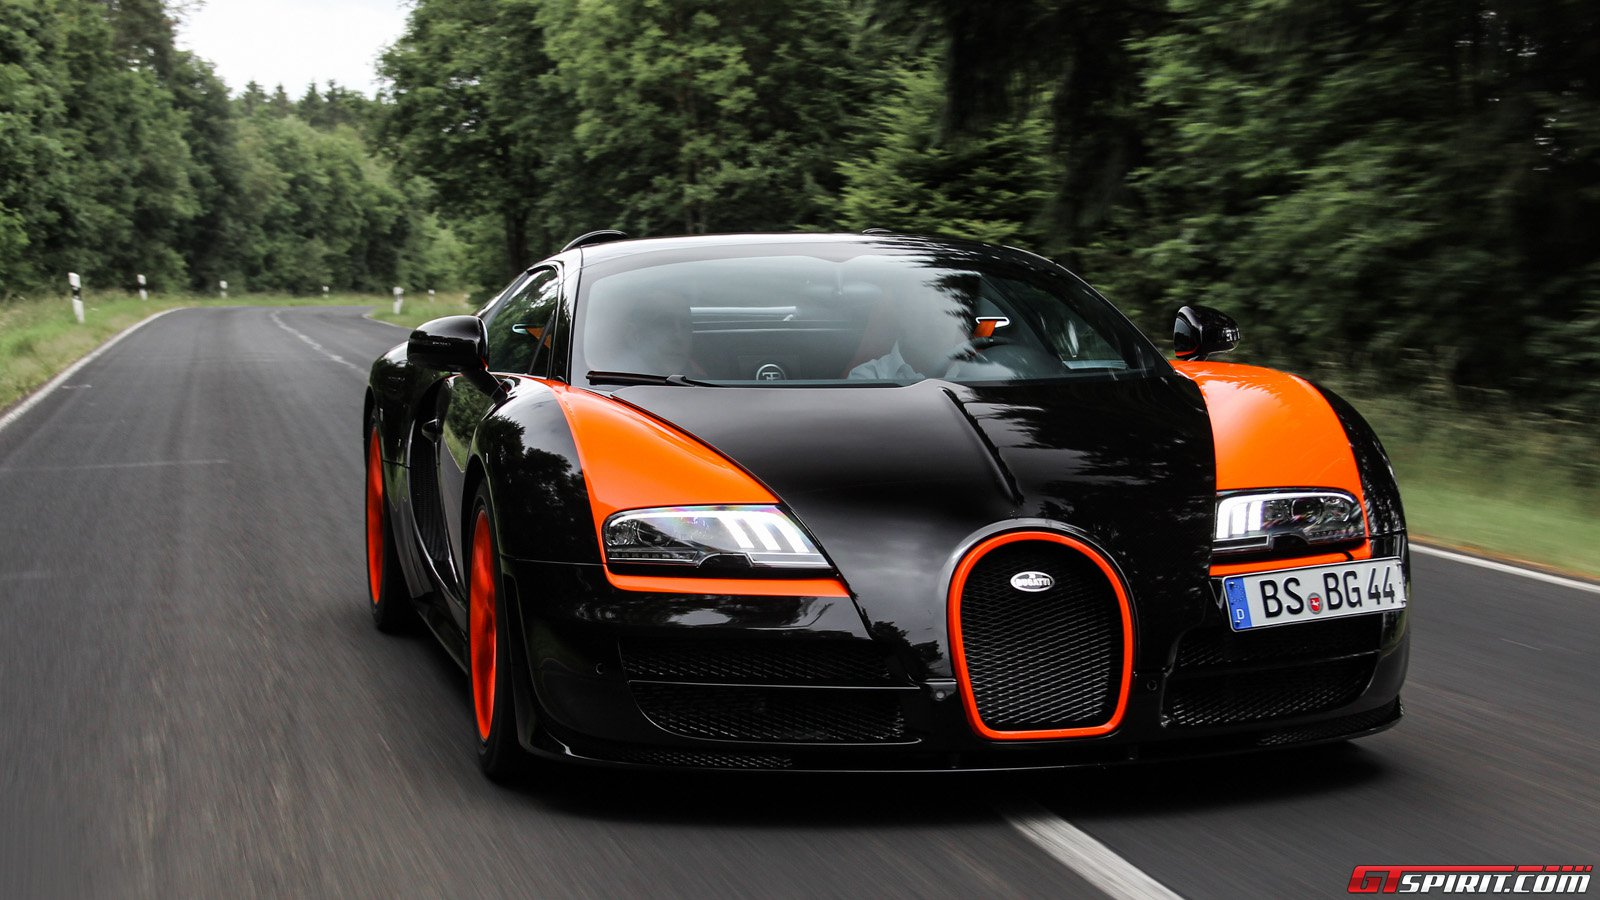 fotos del bugatti veyron vitesse nueva galeria taringa. Black Bedroom Furniture Sets. Home Design Ideas